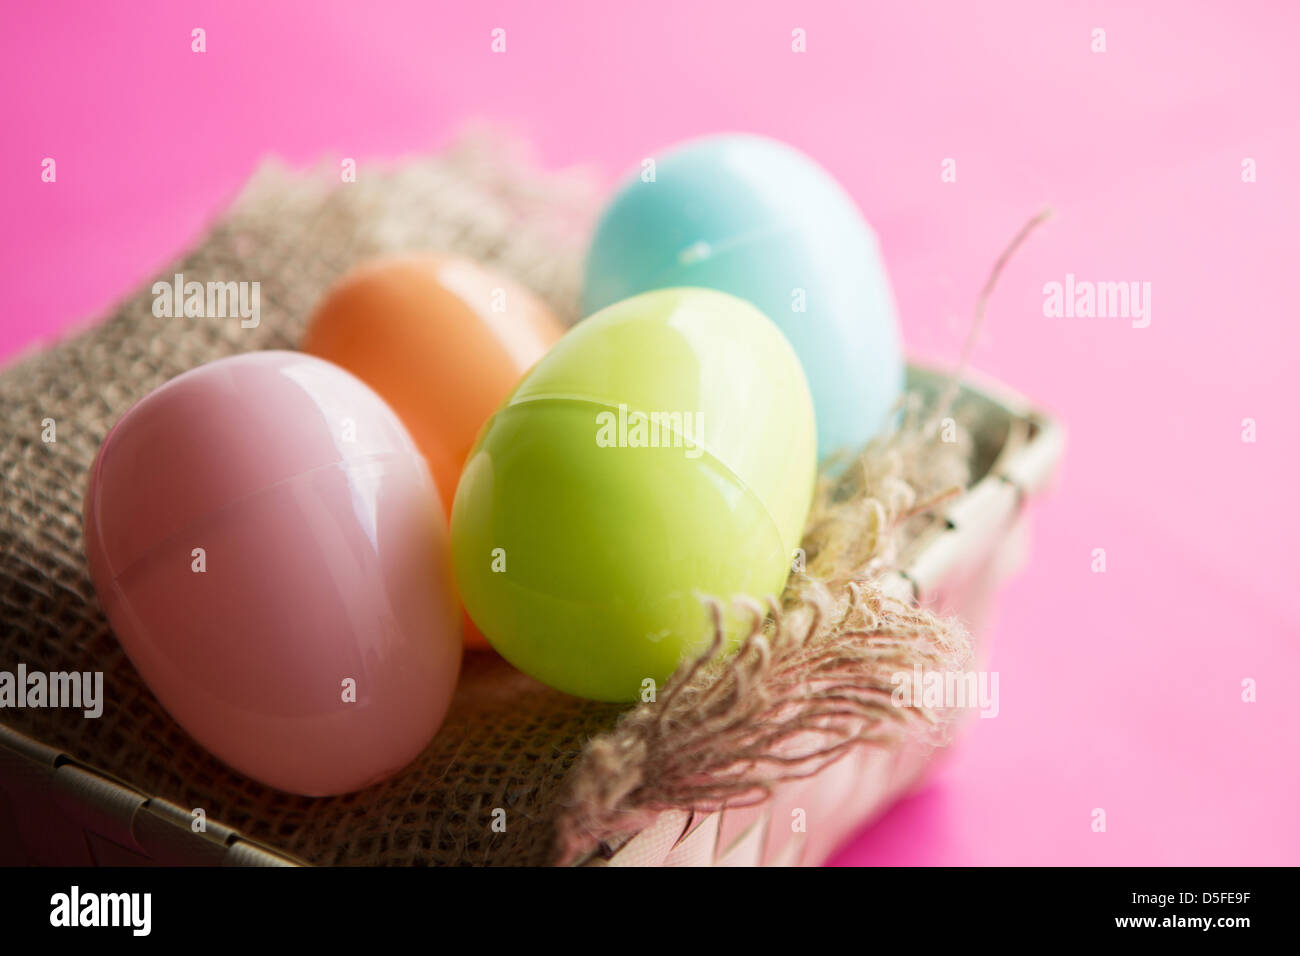 A Basket Of Coloured Plastic Easter Eggs Against Bright Pink Background